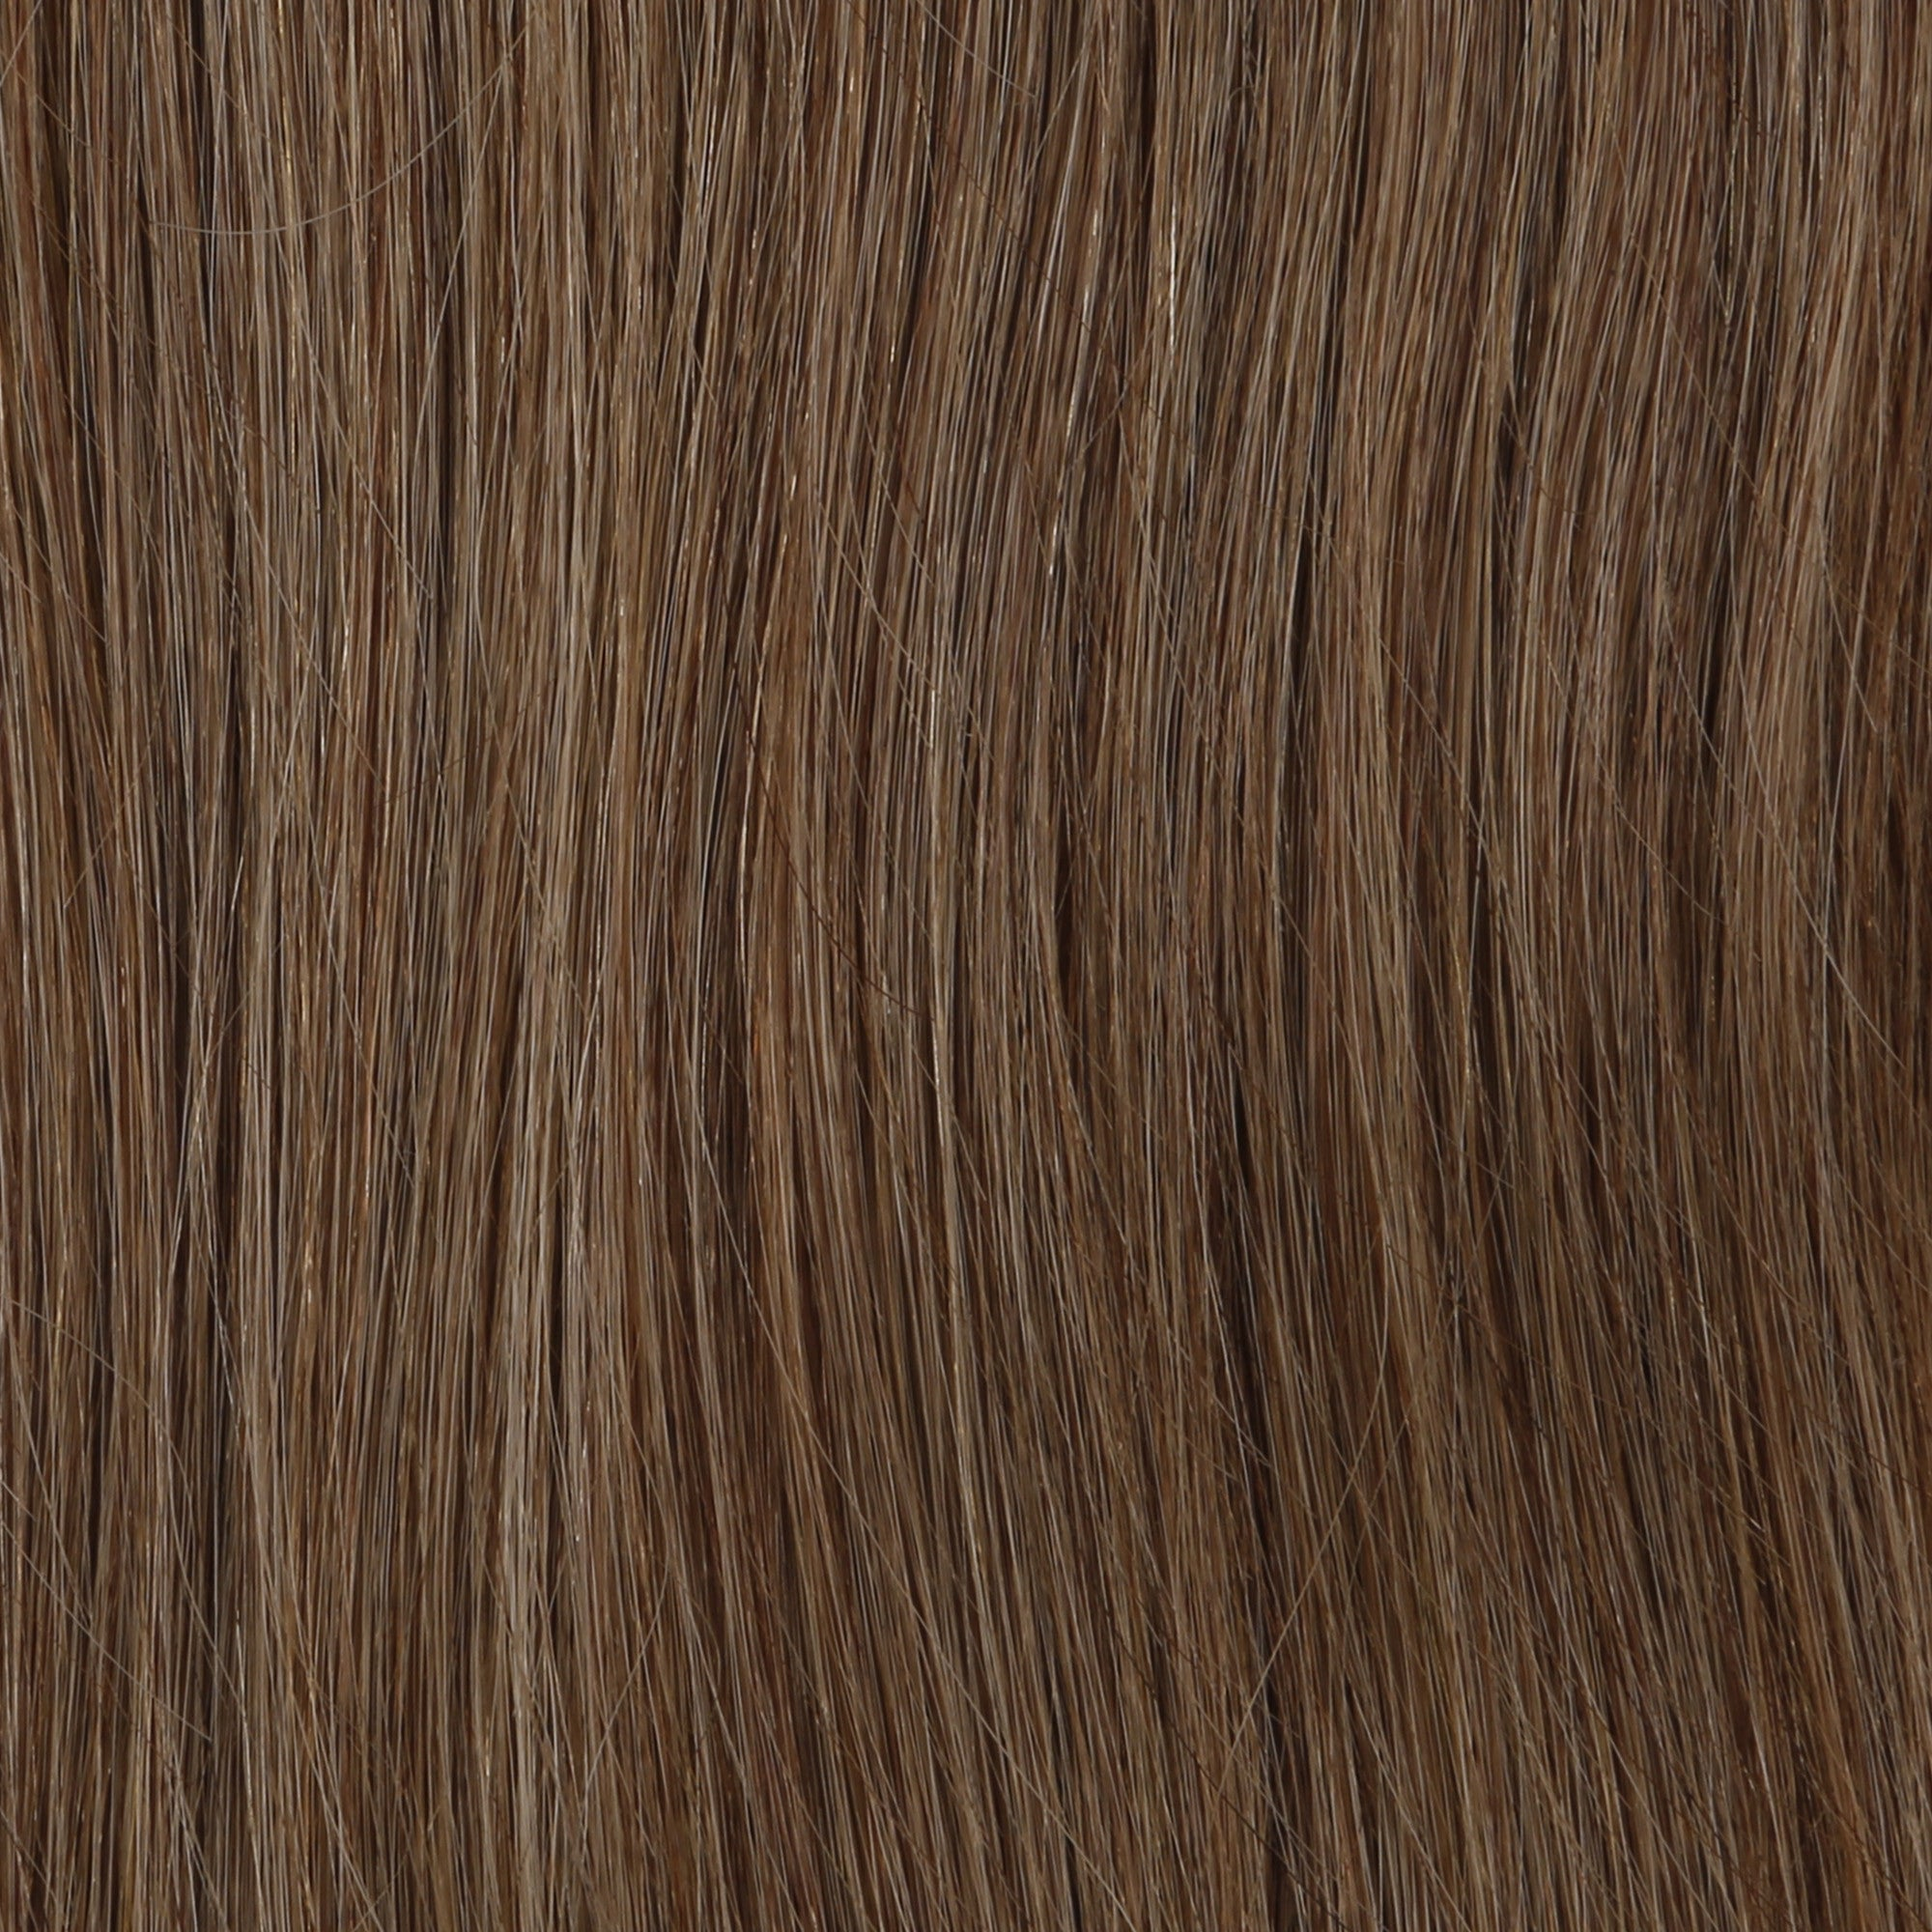 Clip in Hair Extension - Chestnut Brown 8